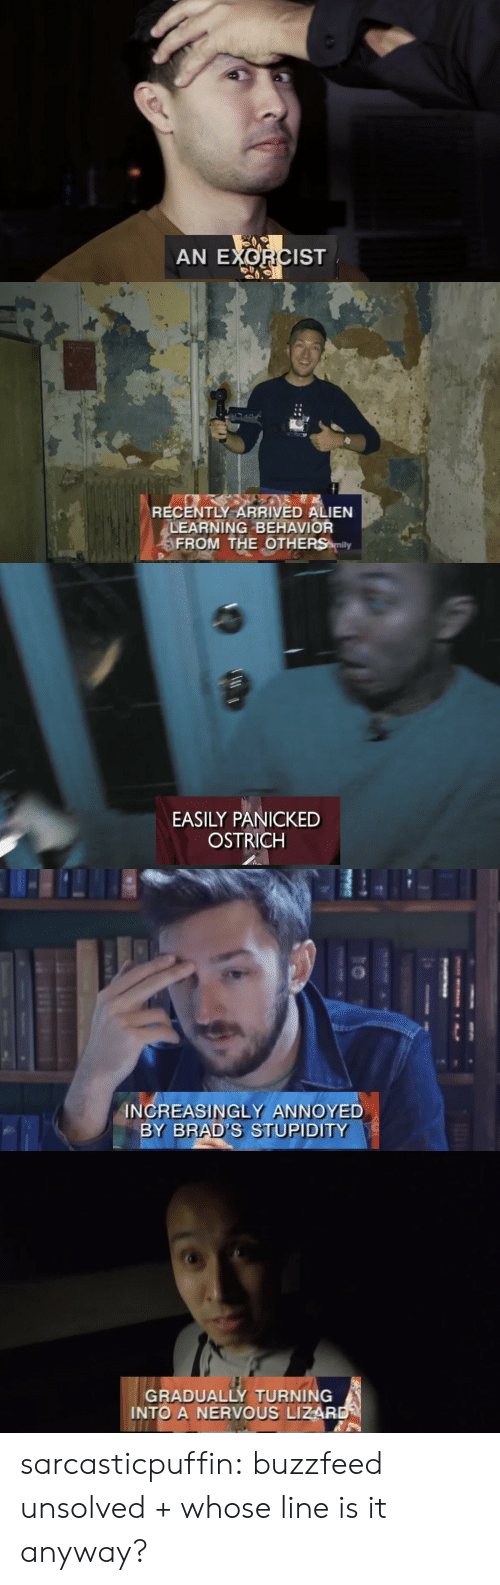 whose line is it anyway: AN EXORCIST   RECENTLY ARRIVED ALIEN  LEARNING BEHAVIOR  FROM THE OTHERS mily   EASILY PANICKED  OSTRICH   INCREASINGLY ANNOYED  BY BRAD'S STUPIDITY   GRADUALLY TURNING  INTO A NERVOUS LIZAR sarcasticpuffin: buzzfeed unsolved + whose line is it anyway?